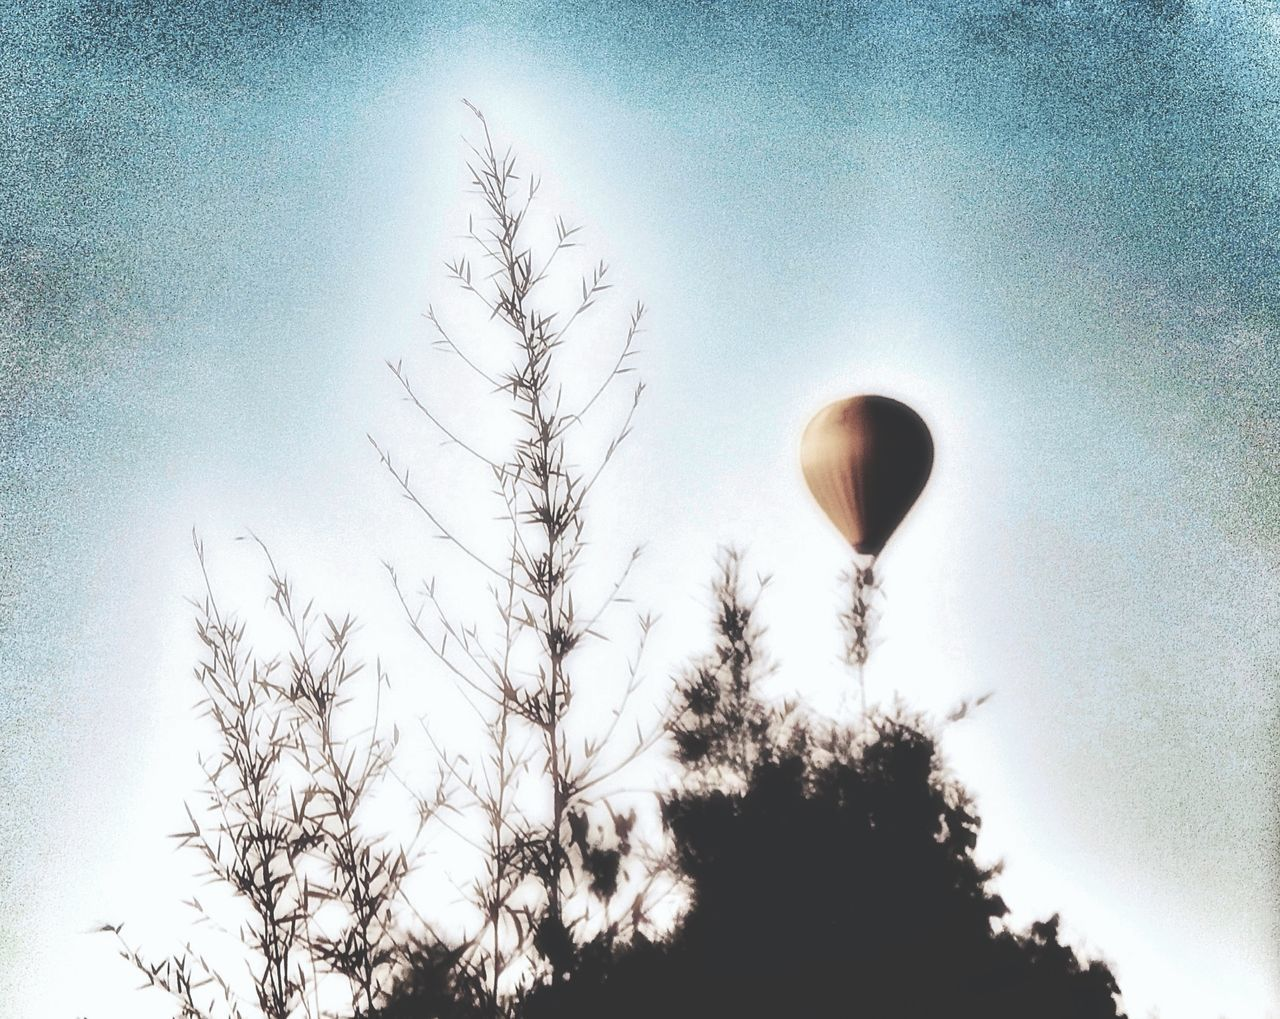 tree, sky, low angle view, silhouette, nature, flying, growth, no people, clear sky, moon, outdoors, beauty in nature, hot air balloon, day